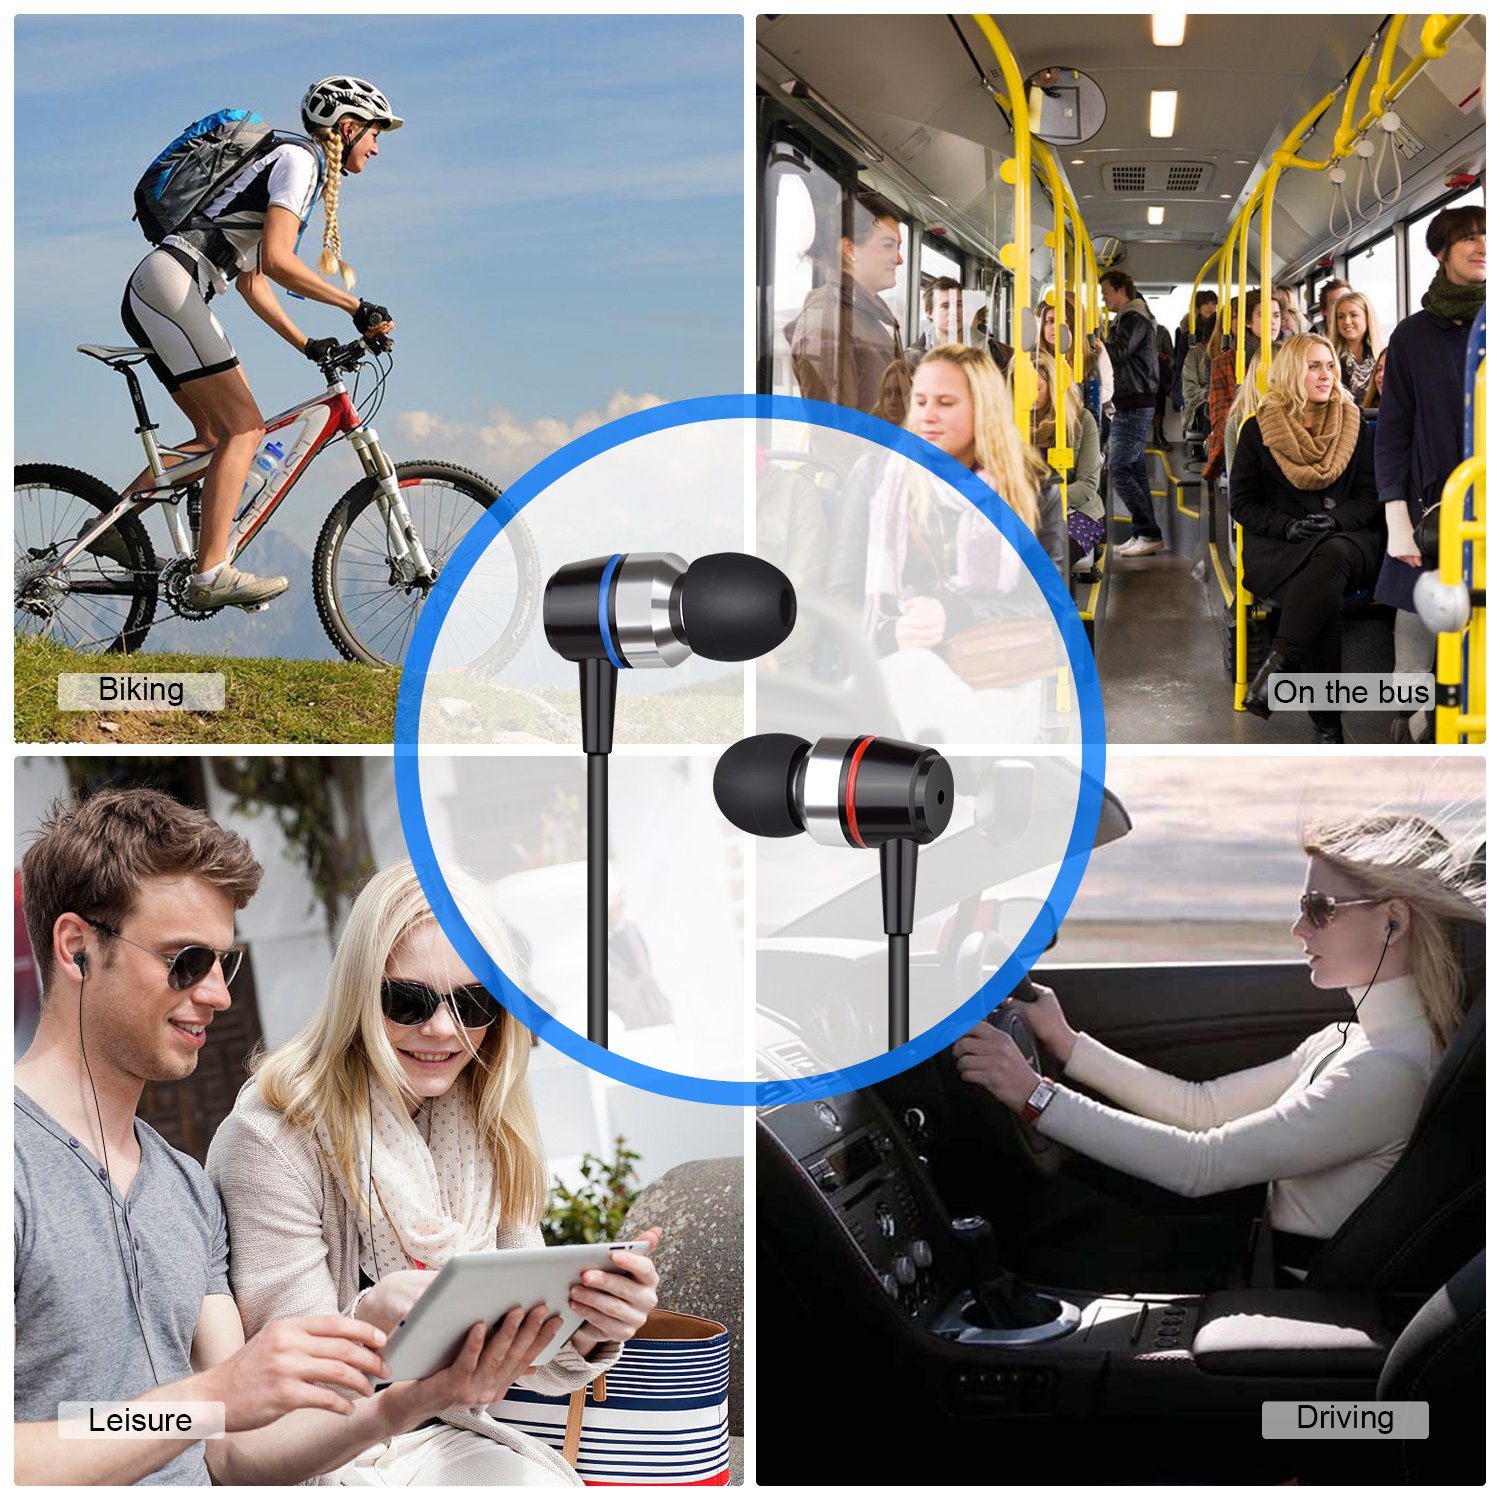 Earbuds Stereo Earphones In-Ear Headphones Earbuds with Microphone Mic and Volume Control Noise Isolating Wired Ear buds For iPhone Android Phone iPad Tablet Laptop(Black) by Gsebr (Image #2)